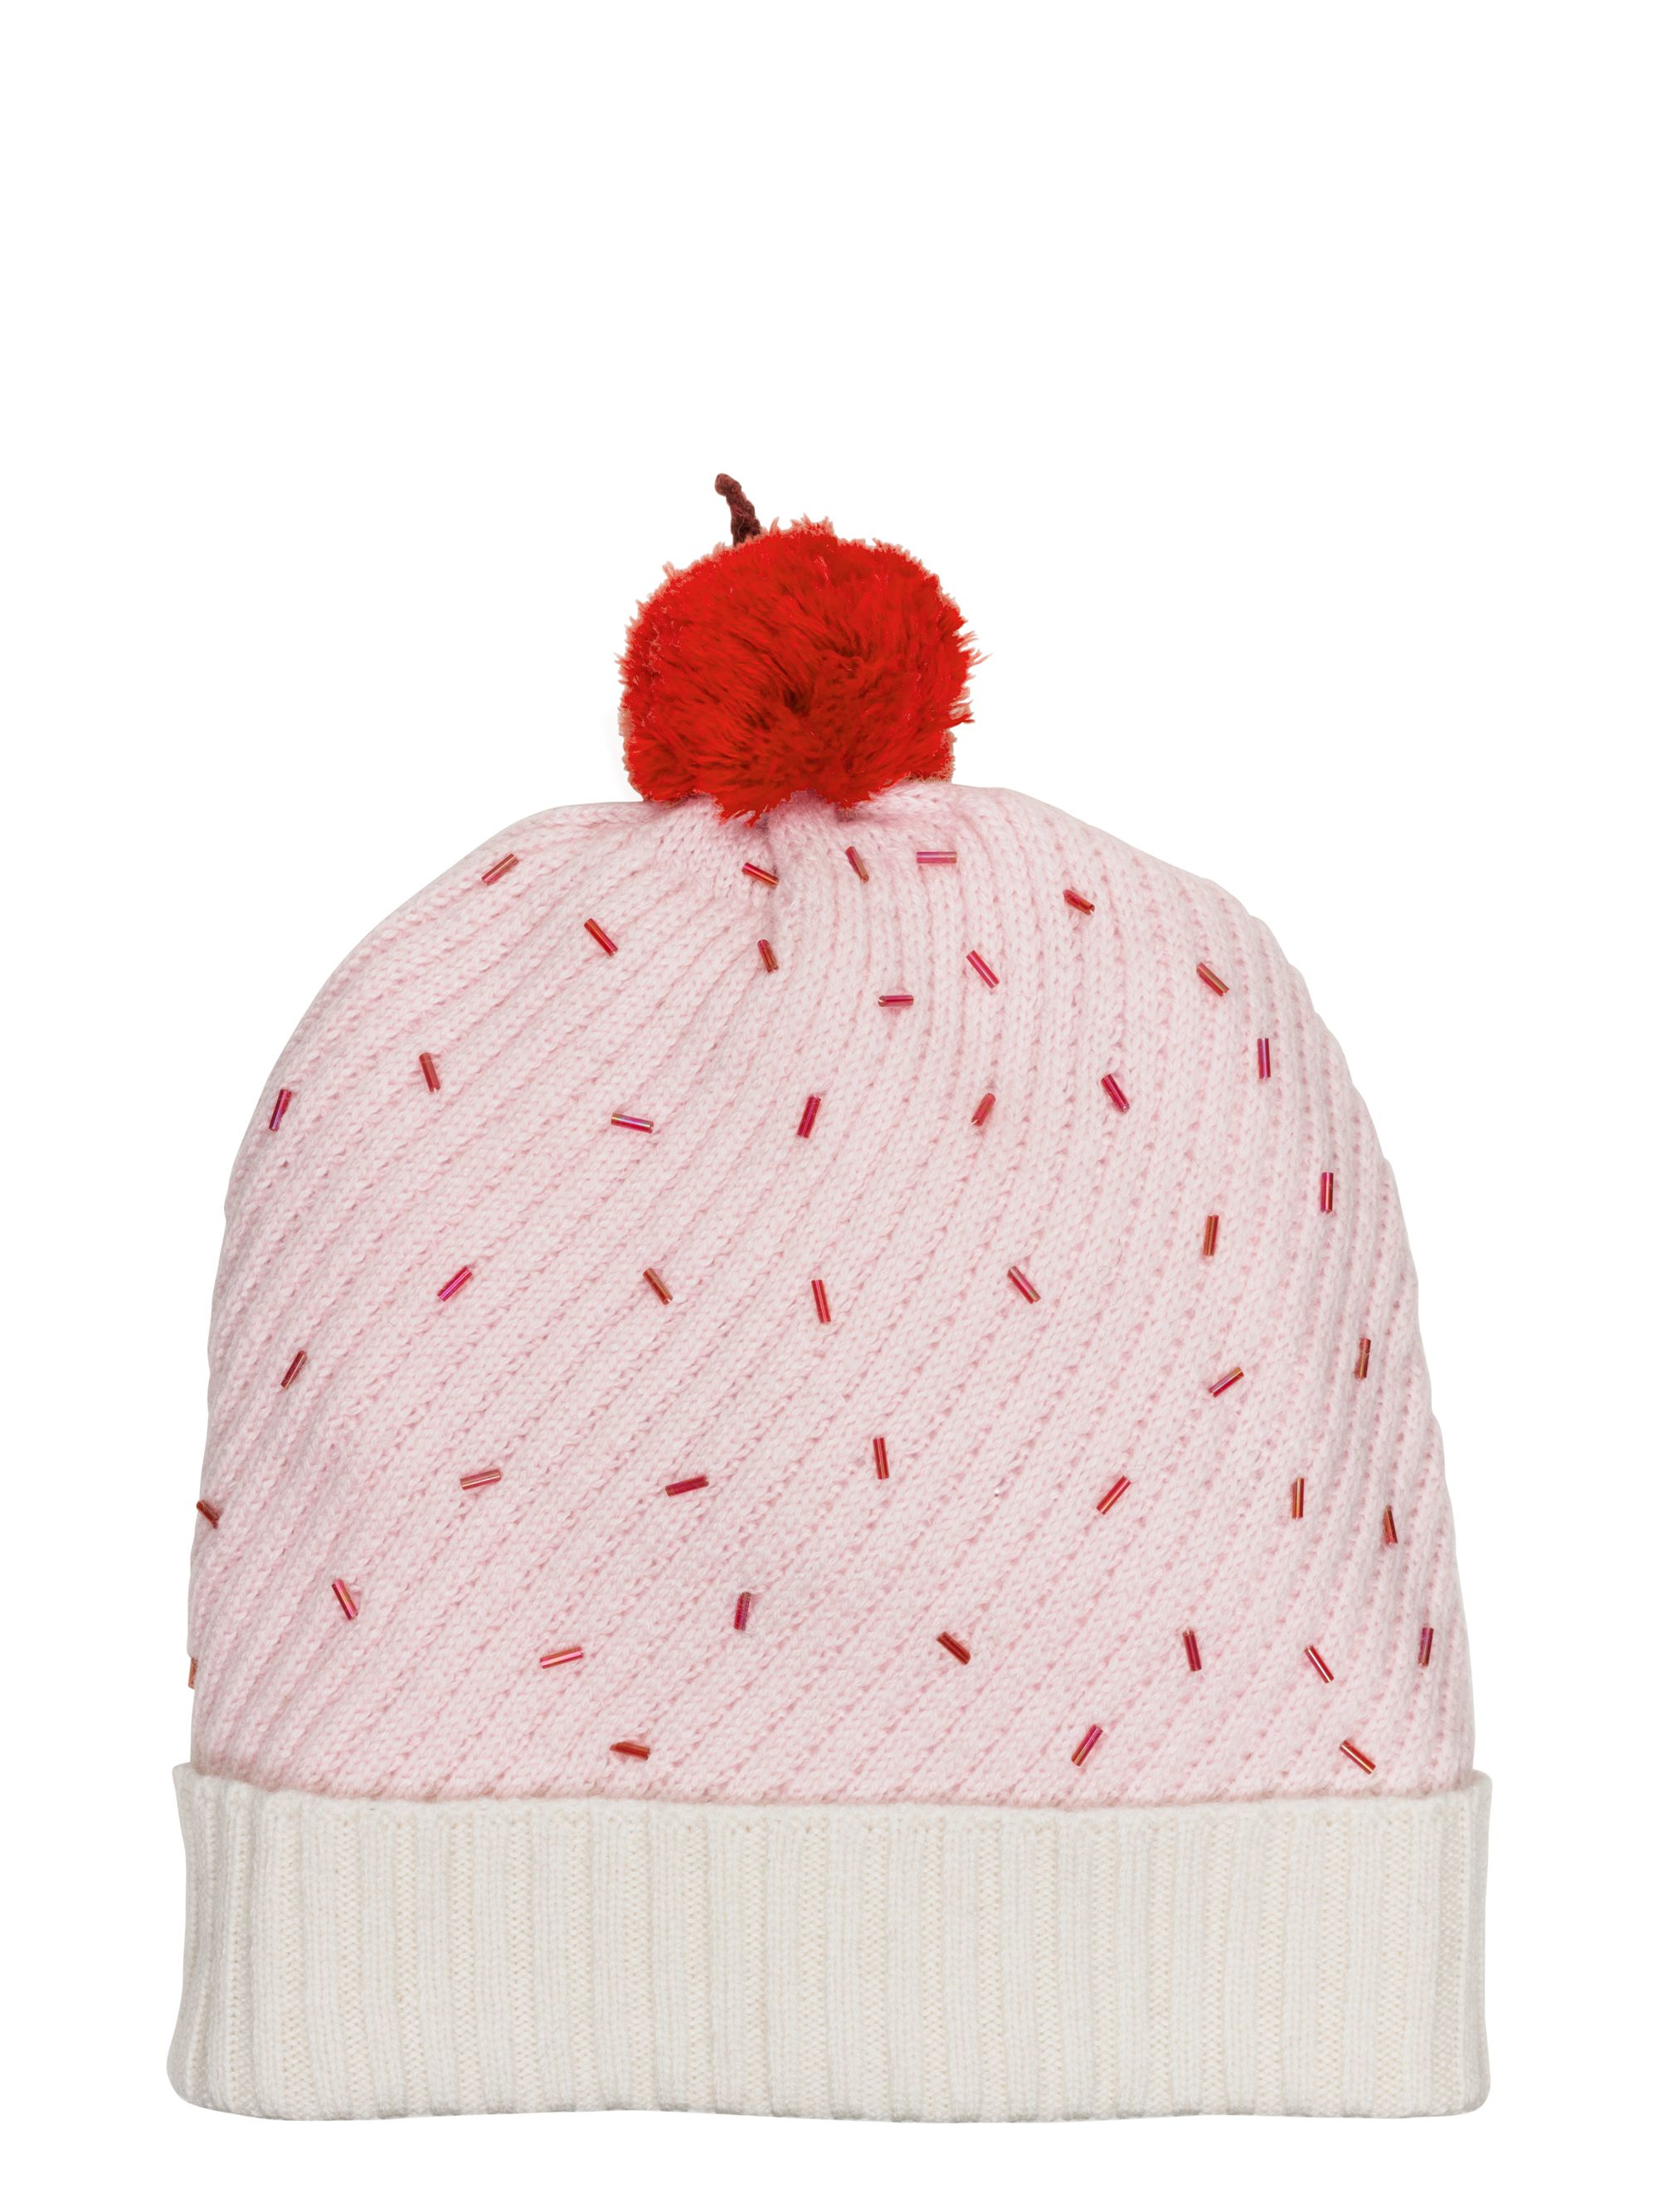 15fb39c44310d Kate Spade Cupcake Hat With Pom in Natural - Lyst